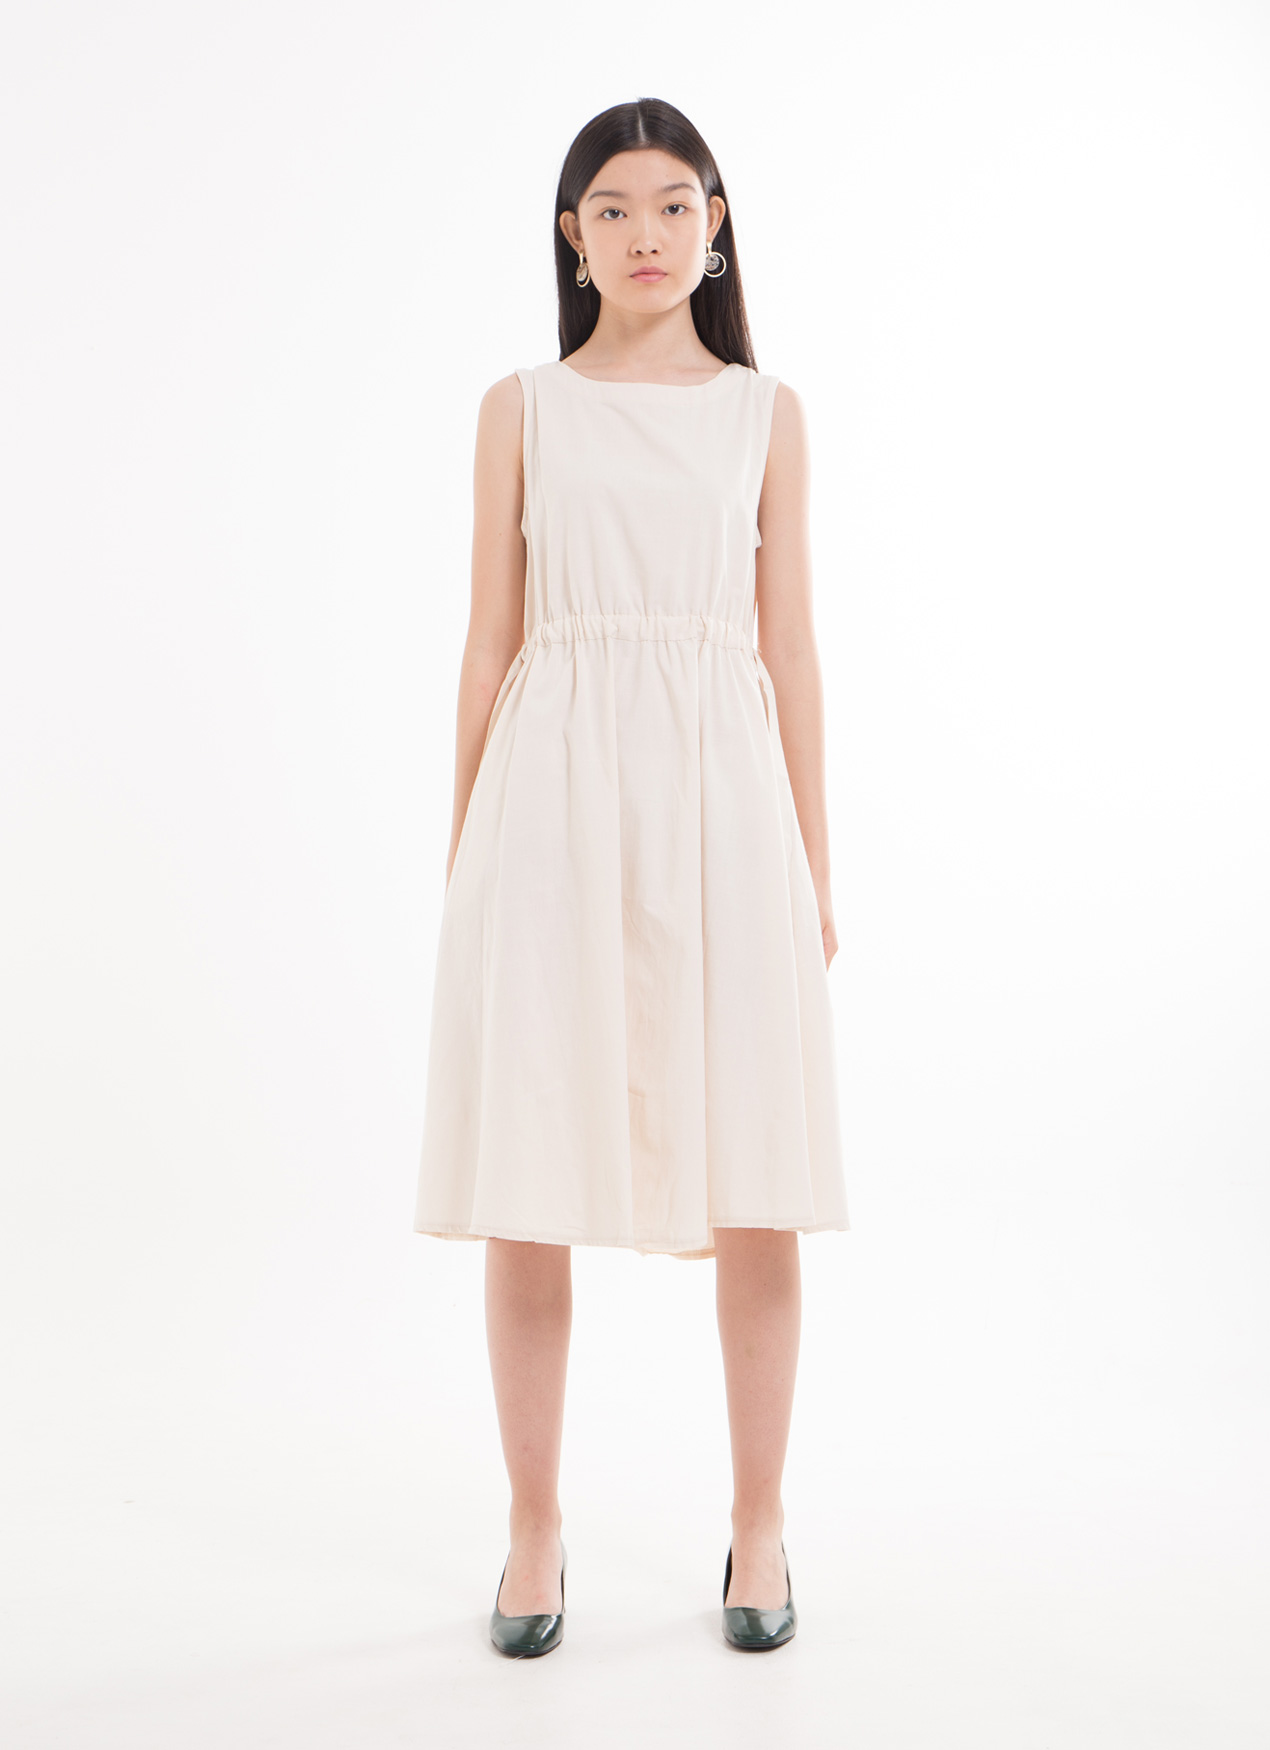 BOWN Anole Dress - White